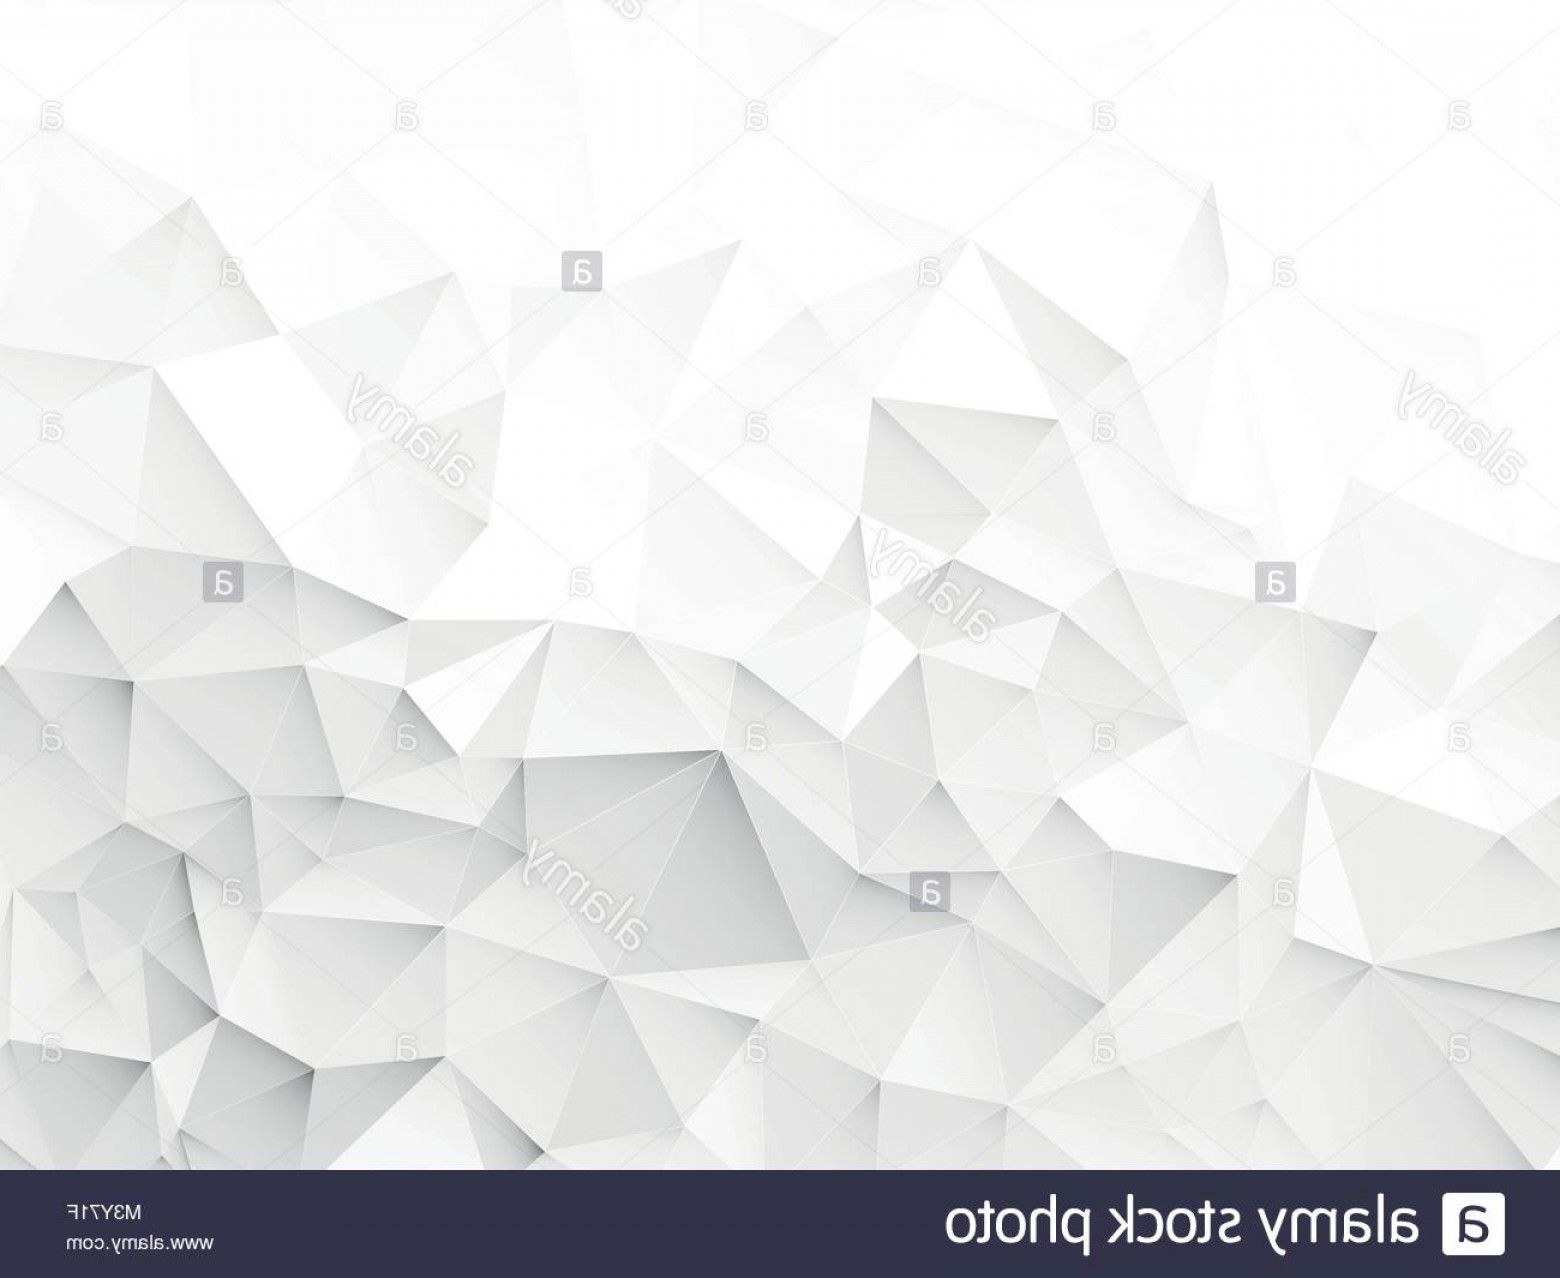 Crinkled Paper Vector: Stock Photo Wrinkled Paper Geometric White Gray Pattern